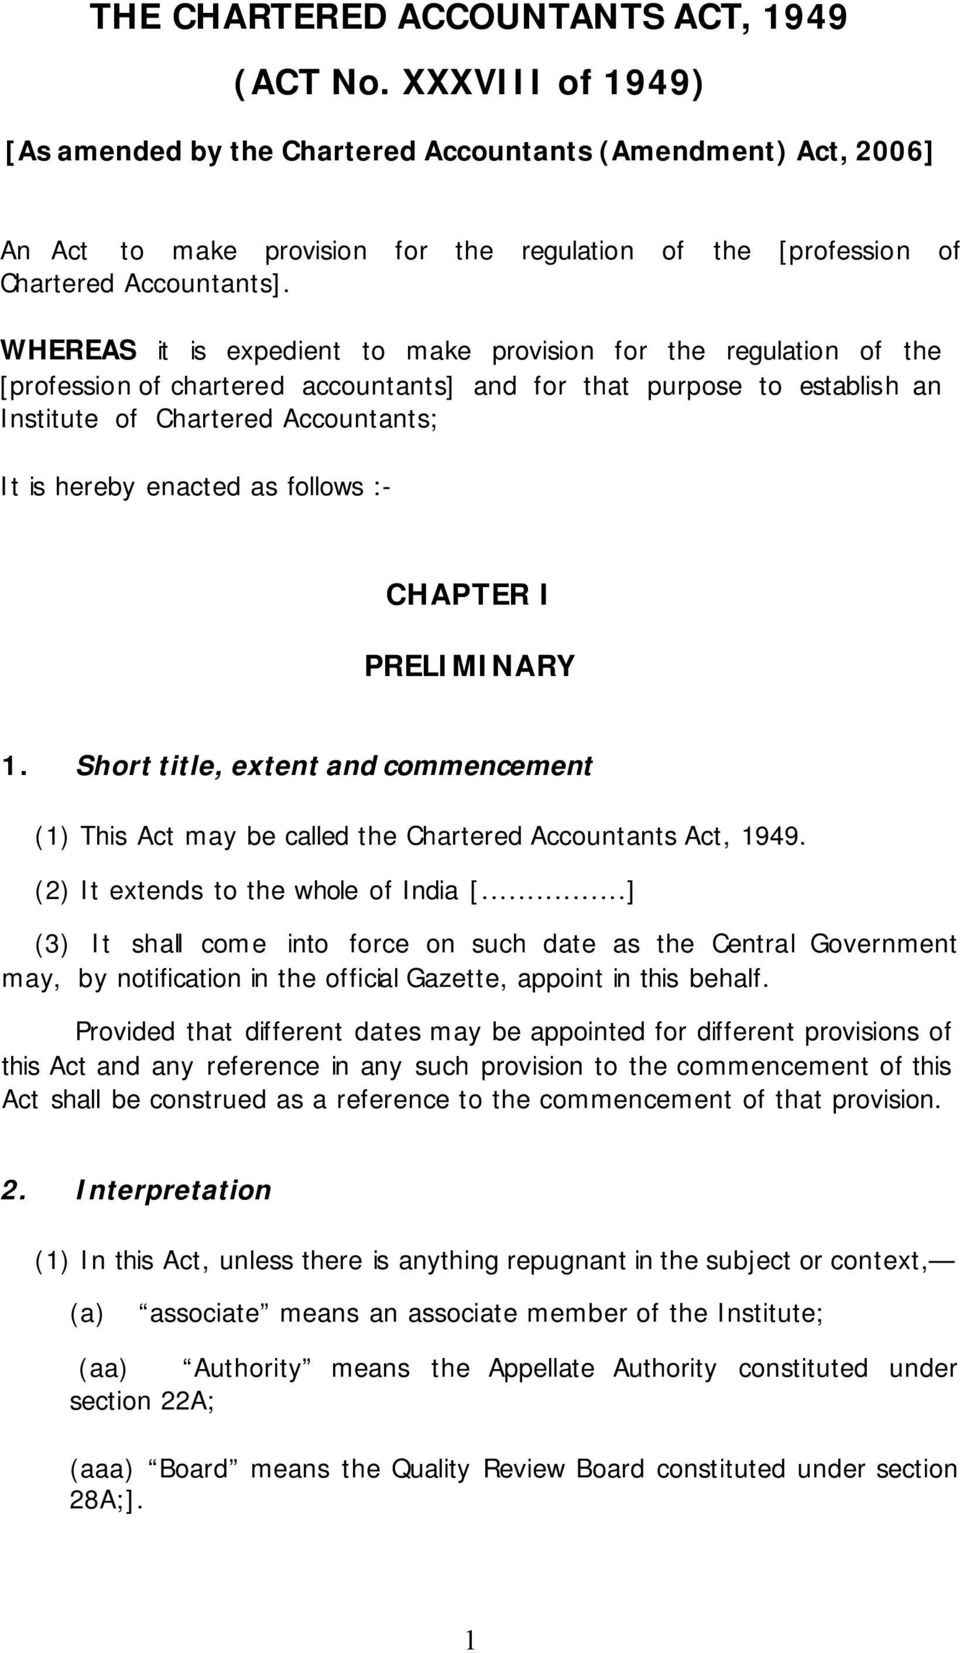 WHEREAS it is expedient to make provision for the regulation of the [profession of chartered accountants] and for that purpose to establish an Institute of Chartered Accountants; It is hereby enacted